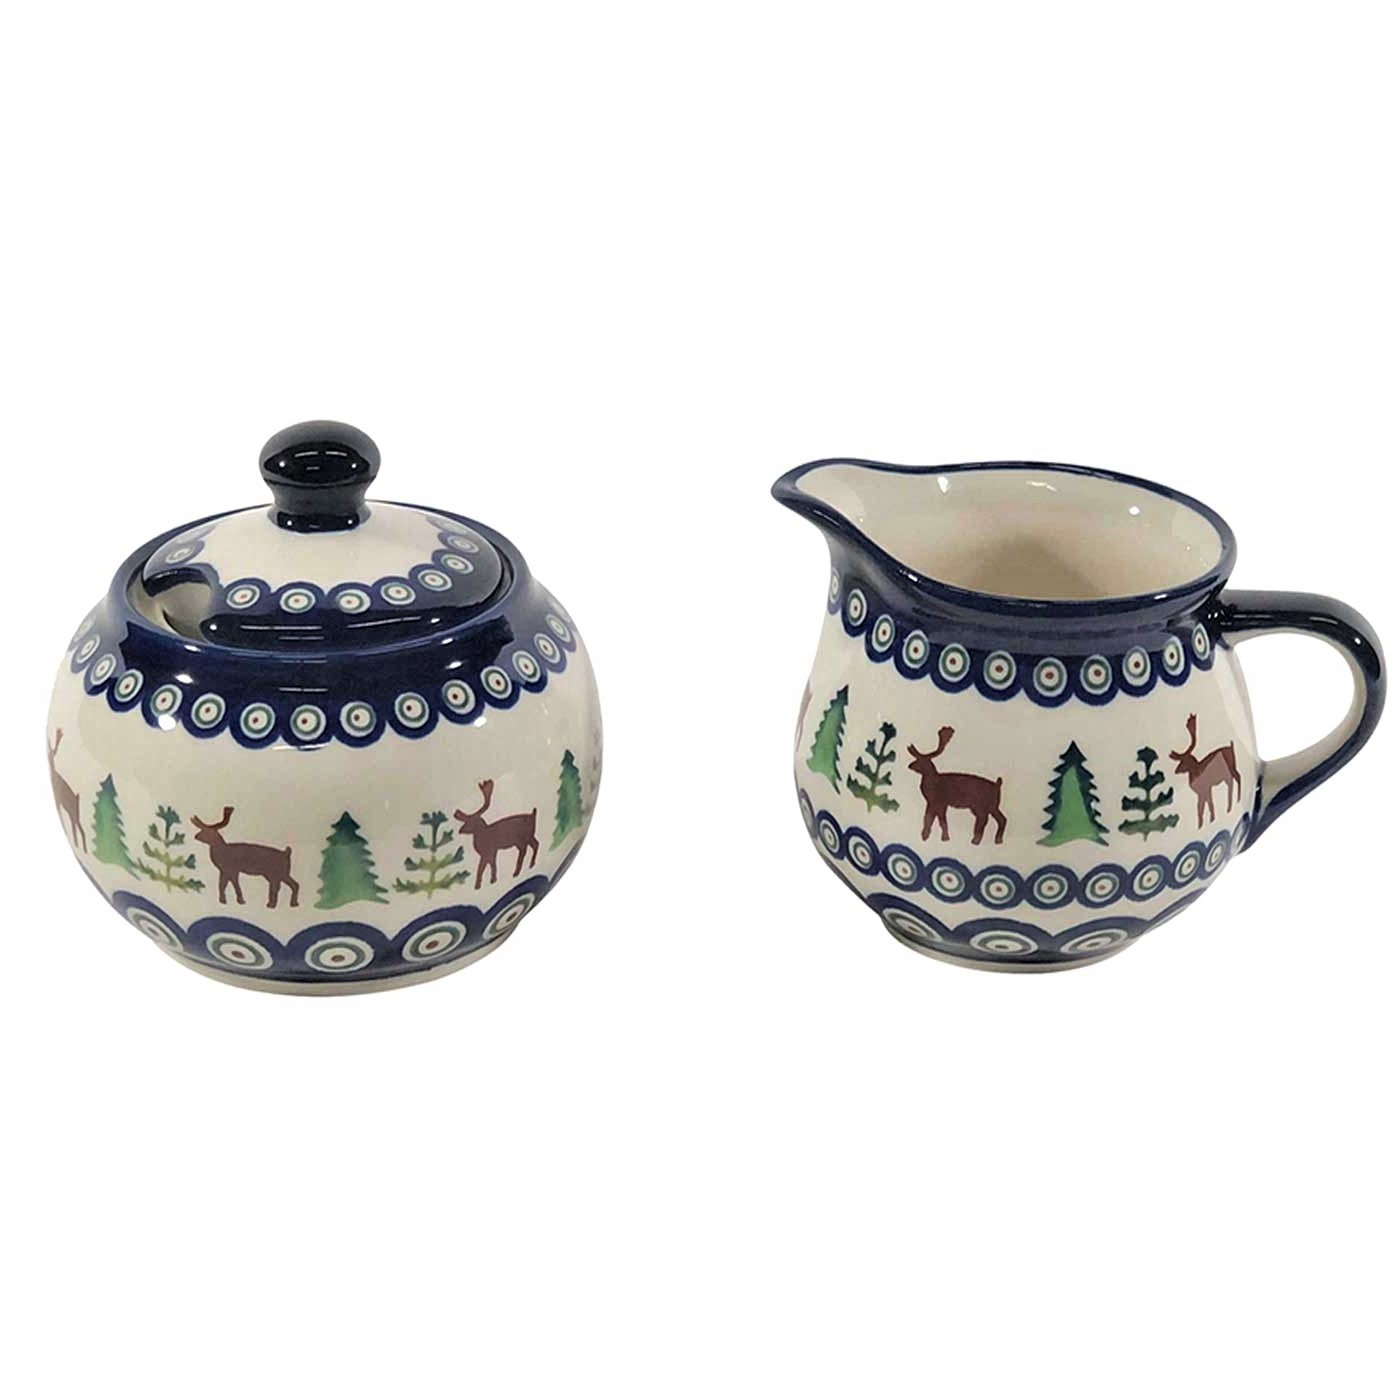 Pottery Avenue Caribou Lodge Stoneware Creamer and Sugar, Great For Stacking 694-945-992A Caribou Lodge